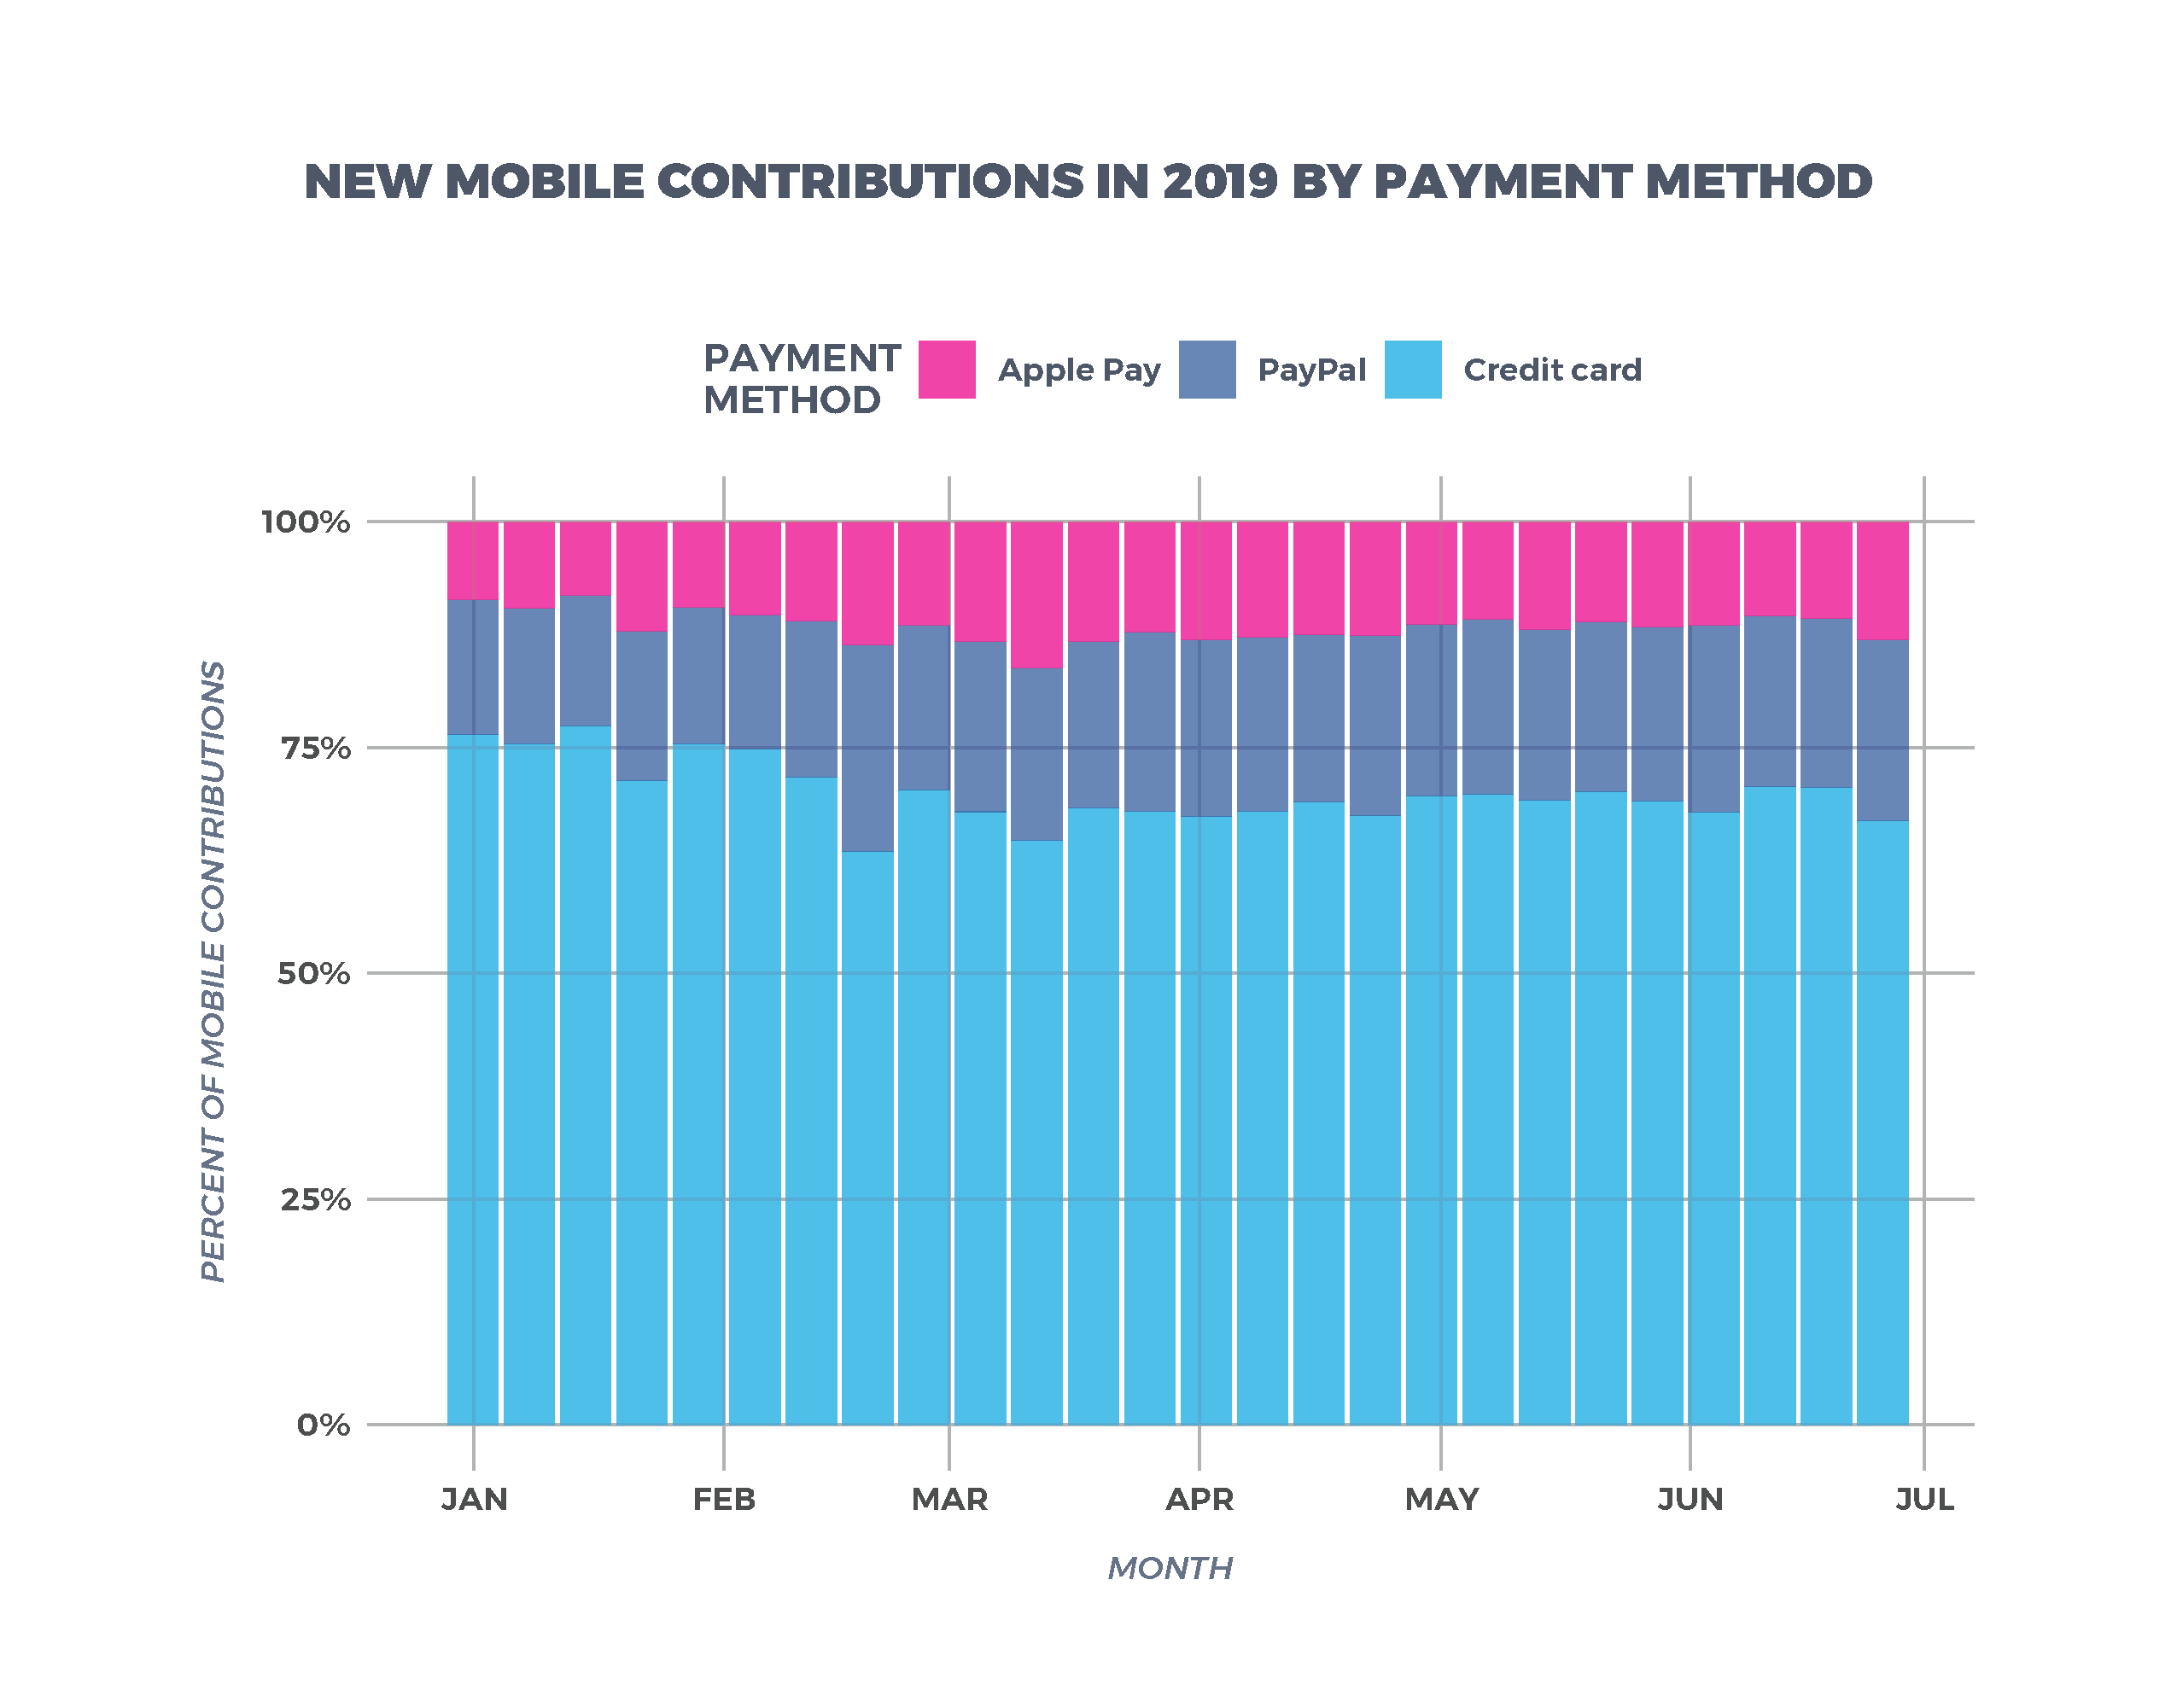 New Mobile Contributions in 2019 by Payment Method